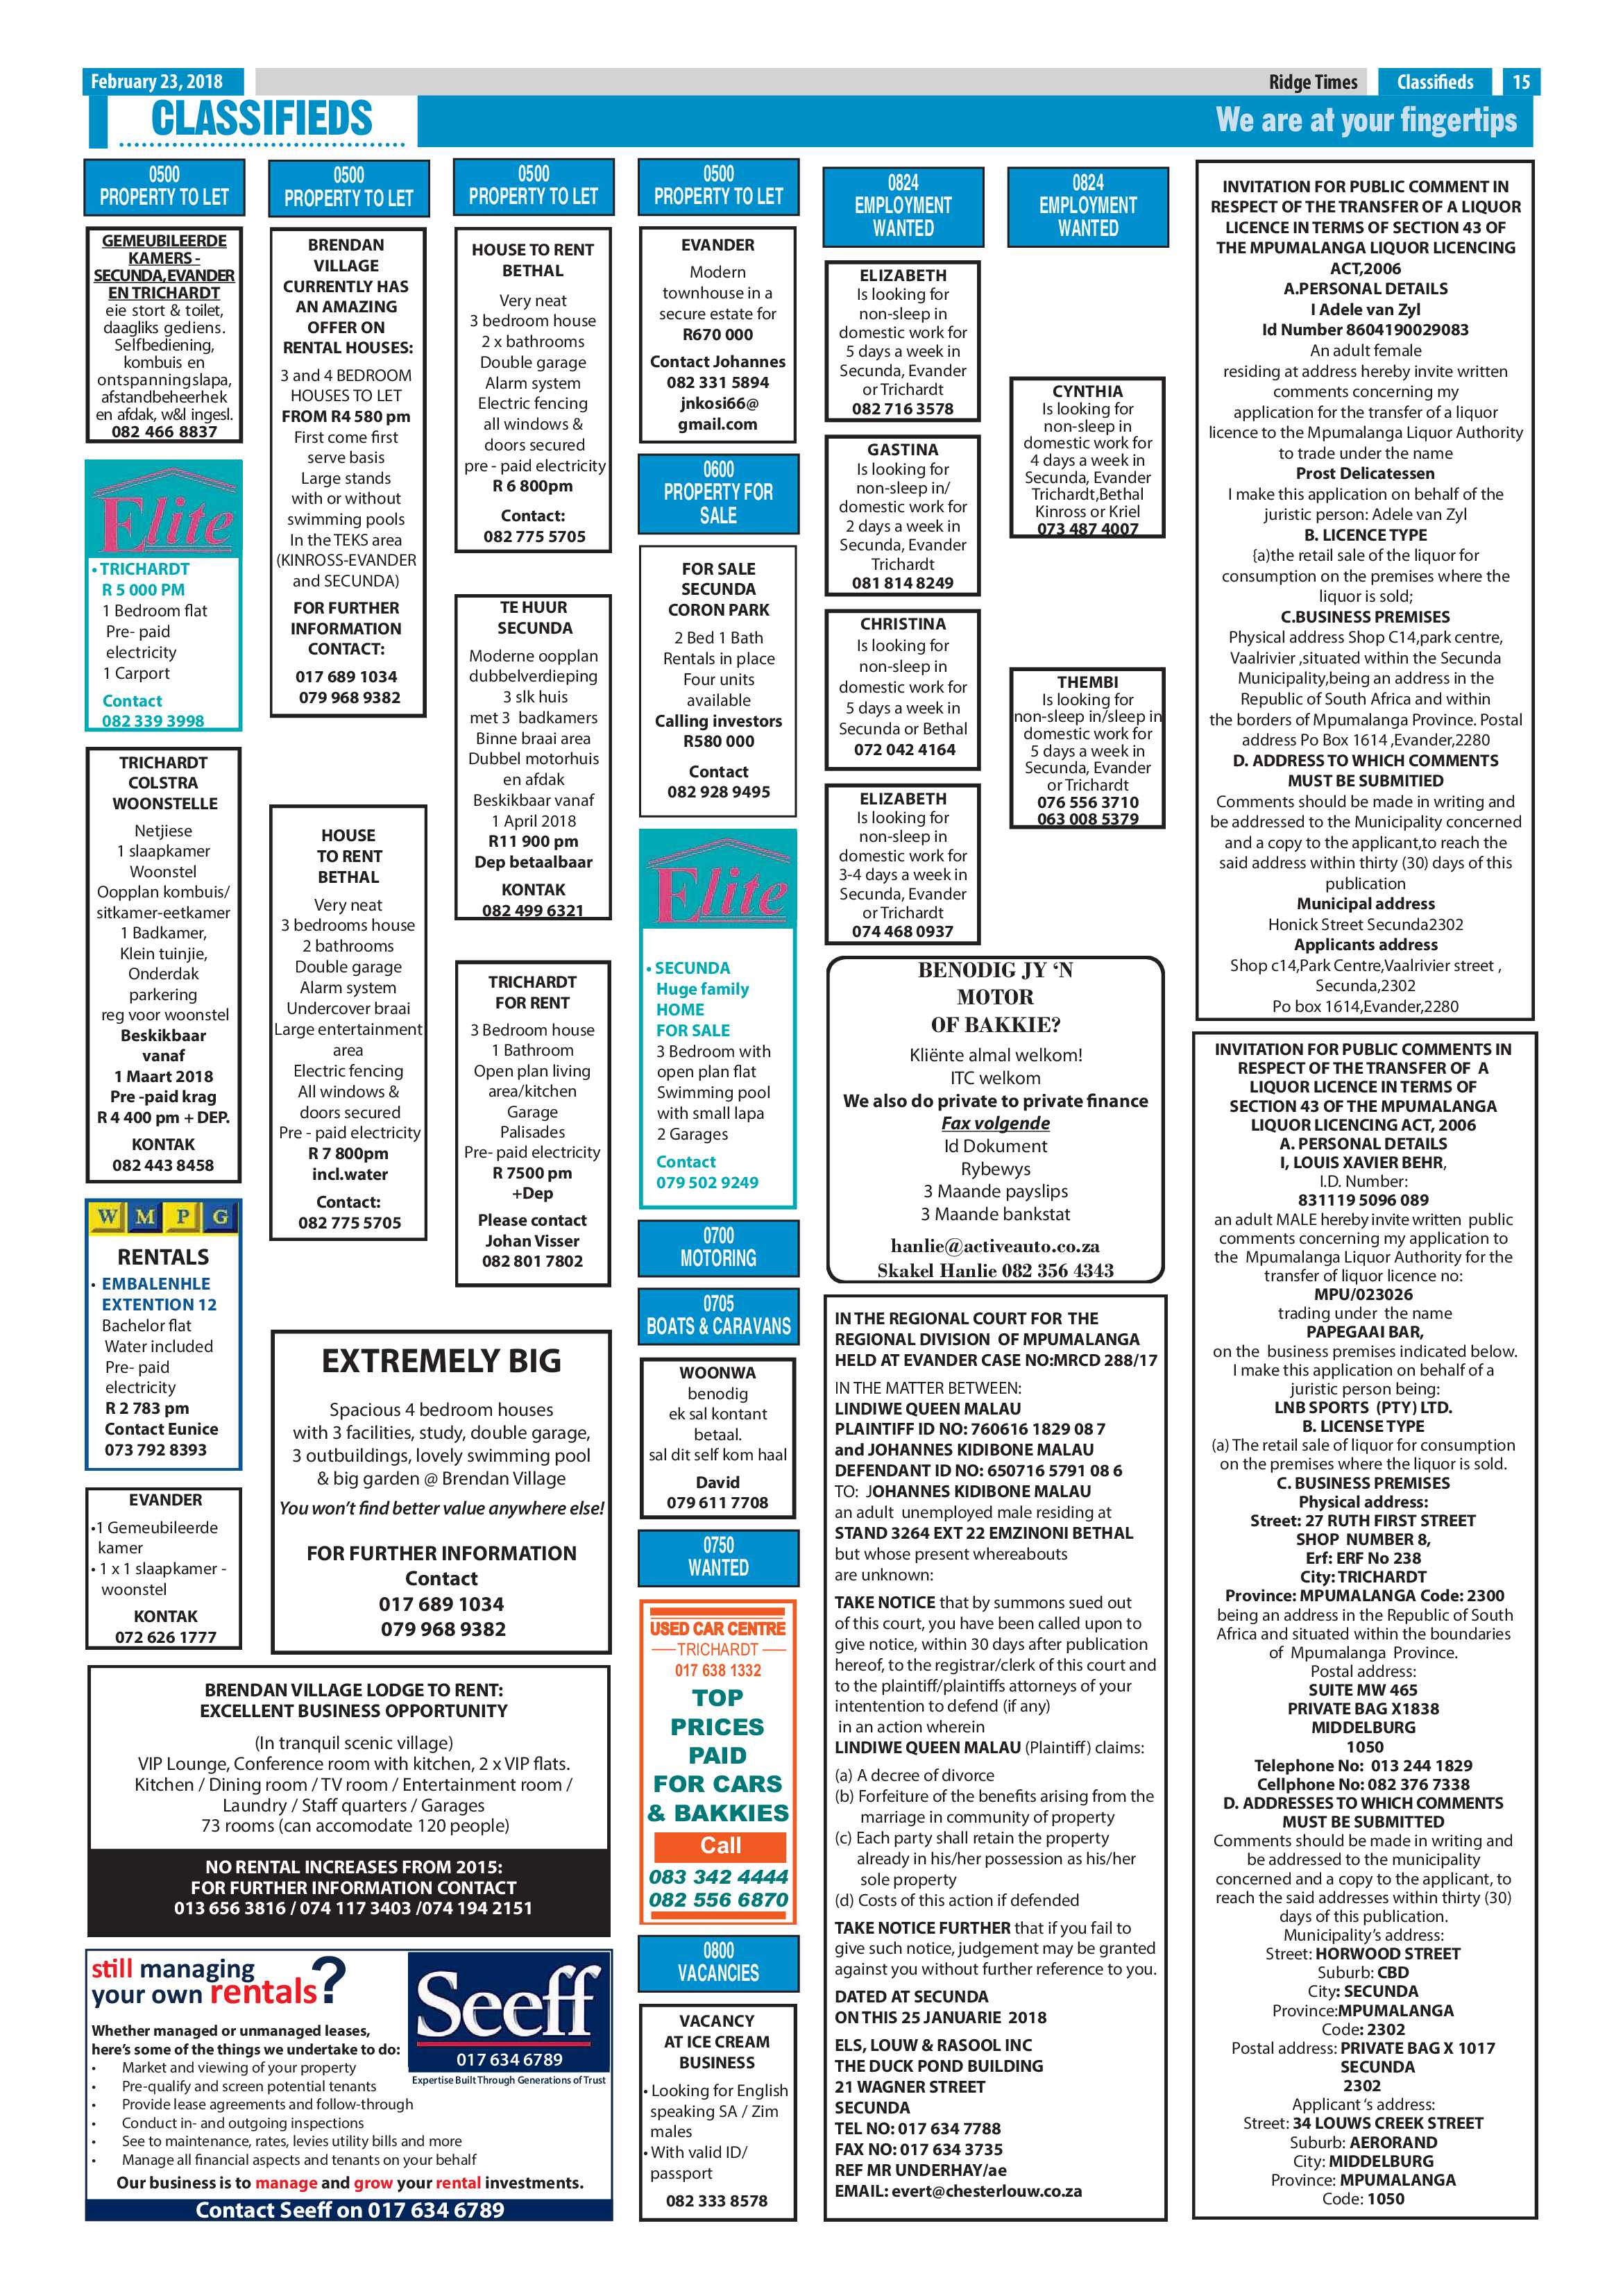 ridge-times-23-february-2018-epapers-page-15